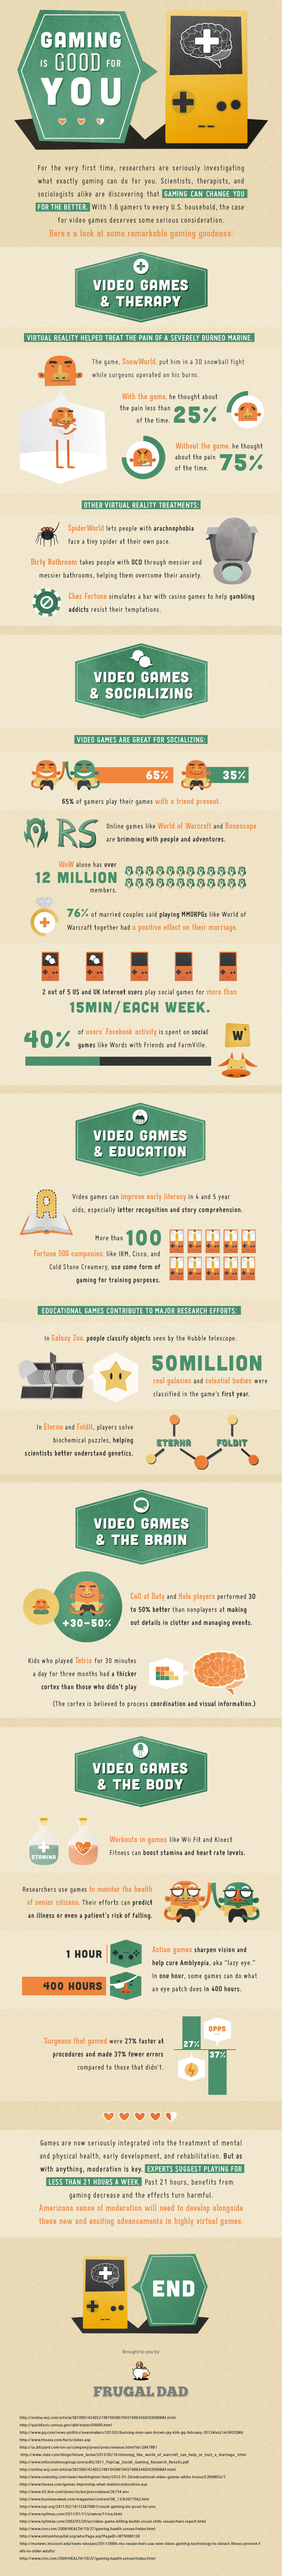 This Infographic Proves that Gaming is Good for You